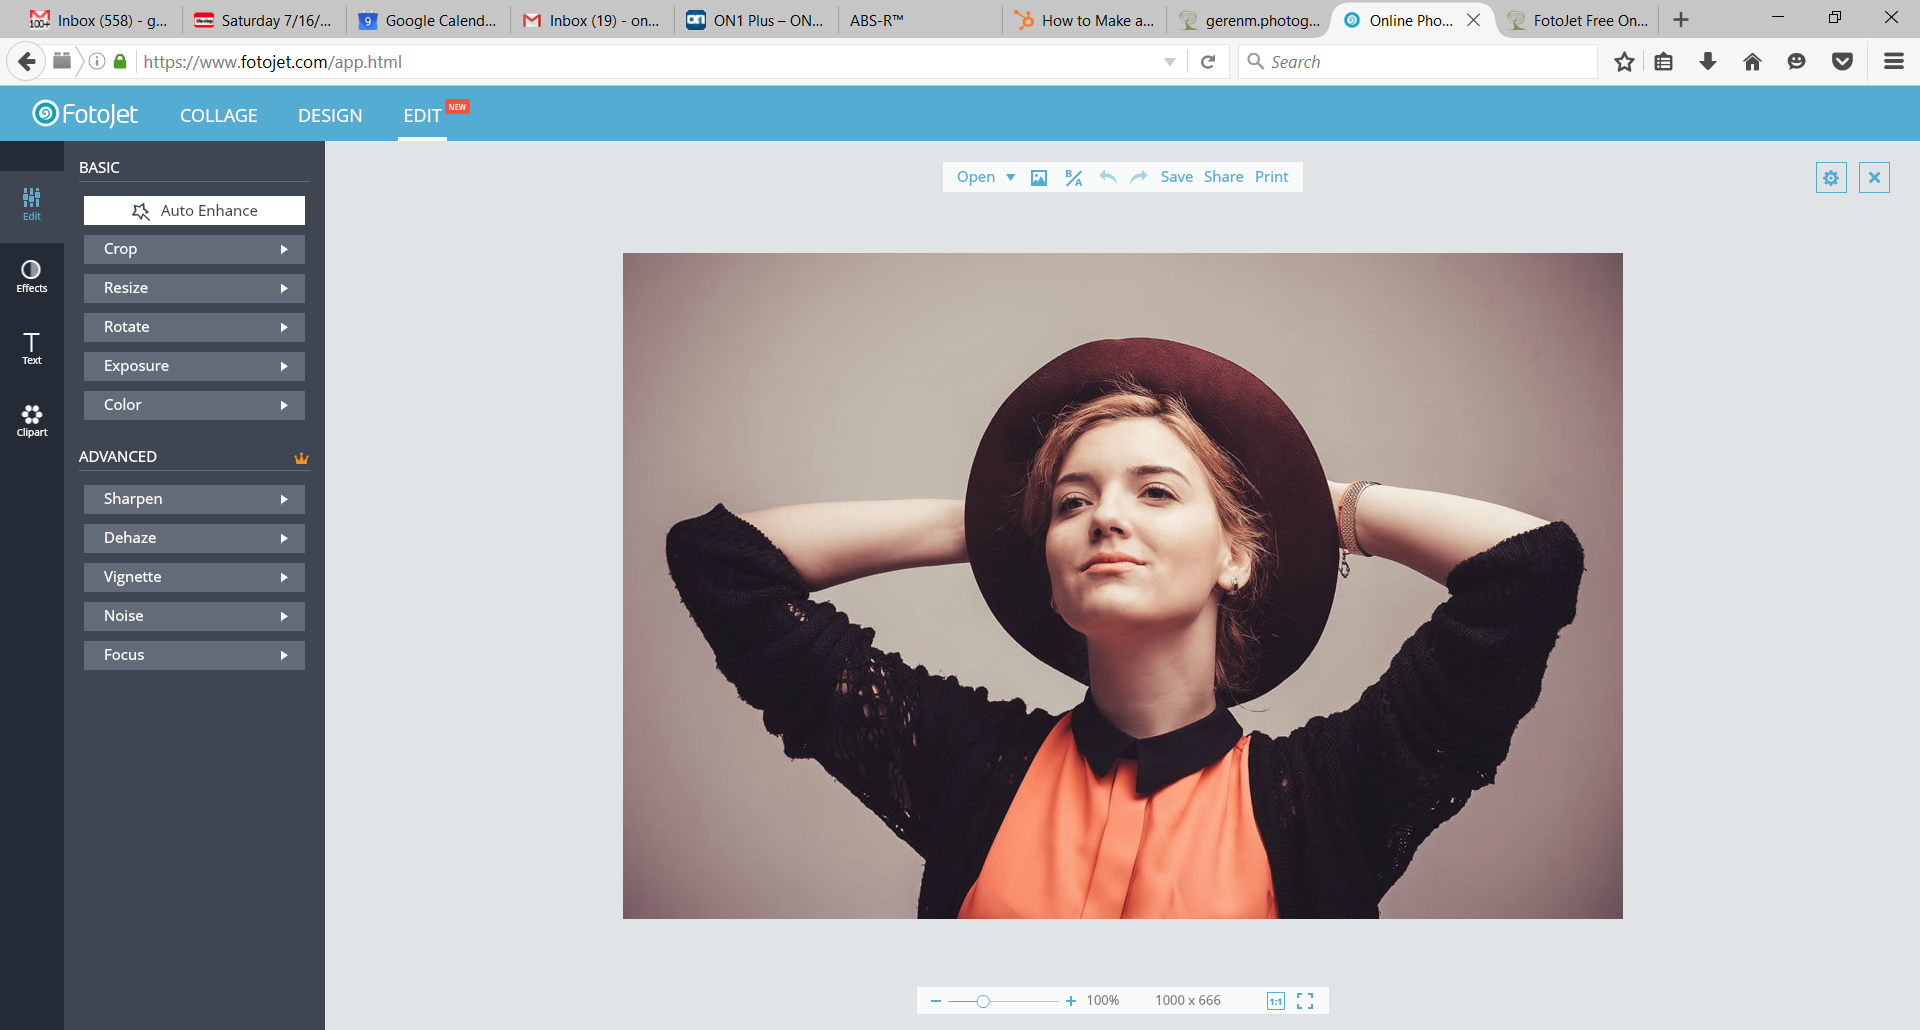 fotojet's new online image editing screen.